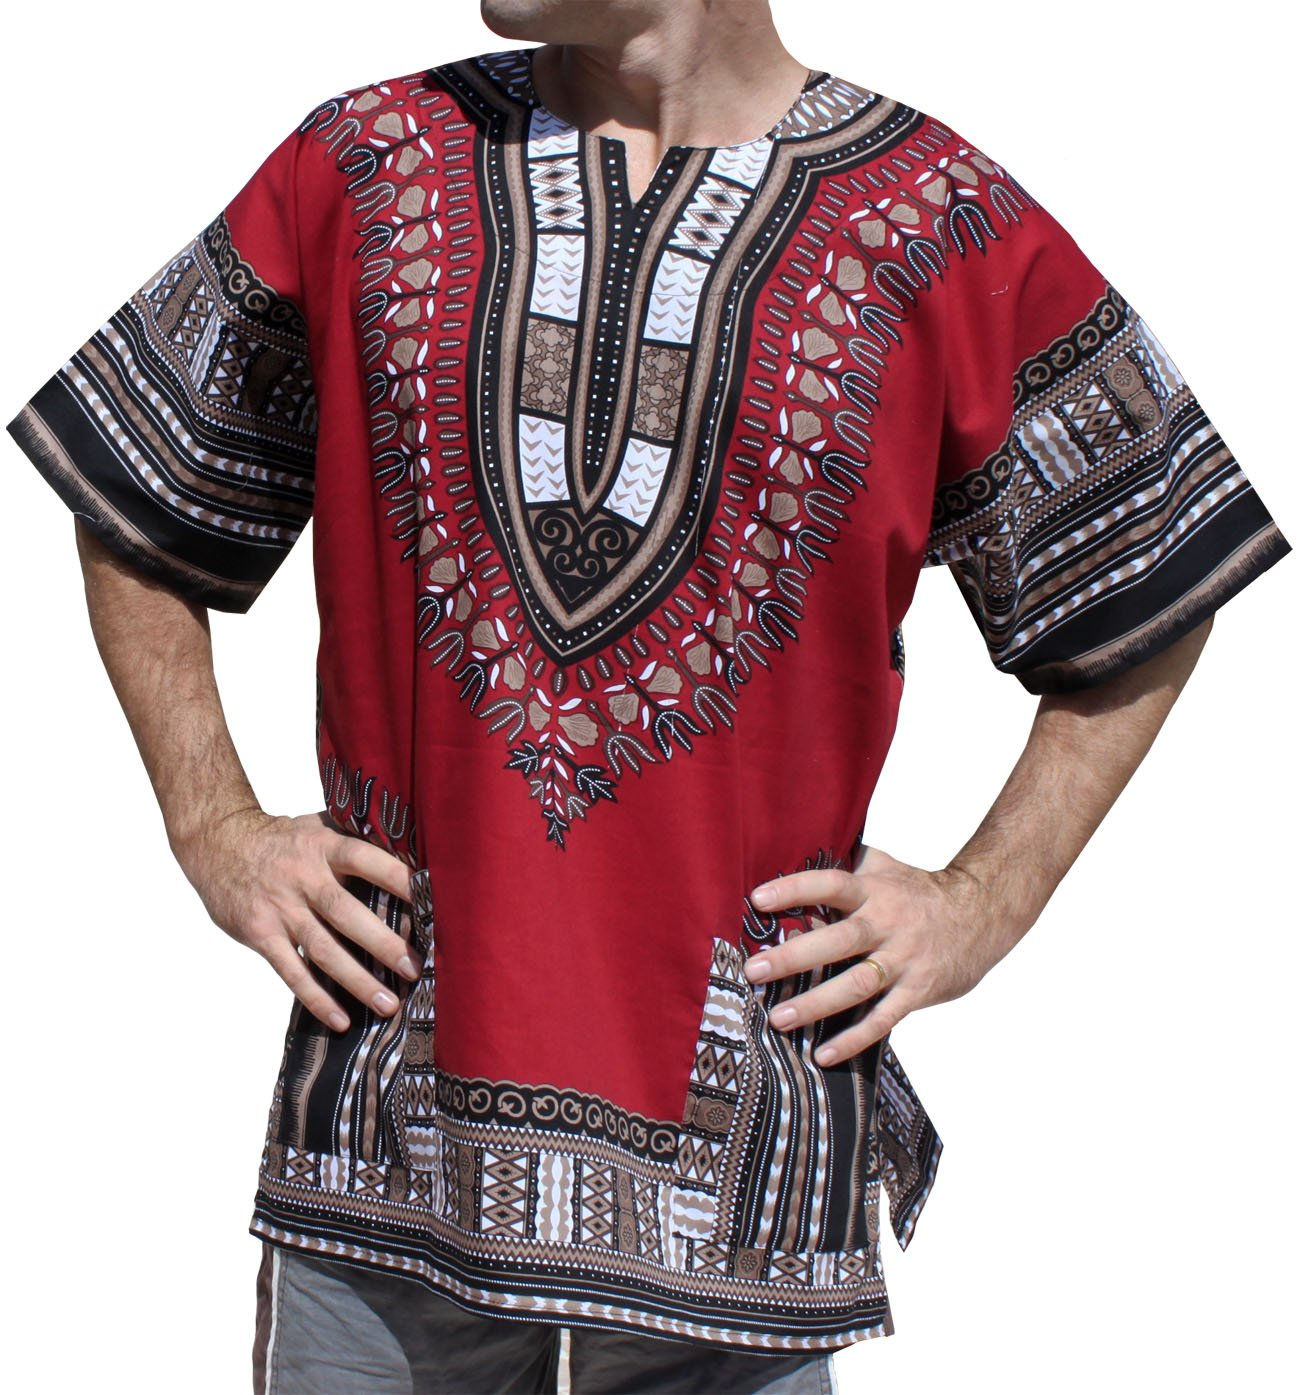 Raan Pah Muang Unisex African Bright Dashiki Cotton Shirt Variety Colors CA_AMZvariant15060MDL